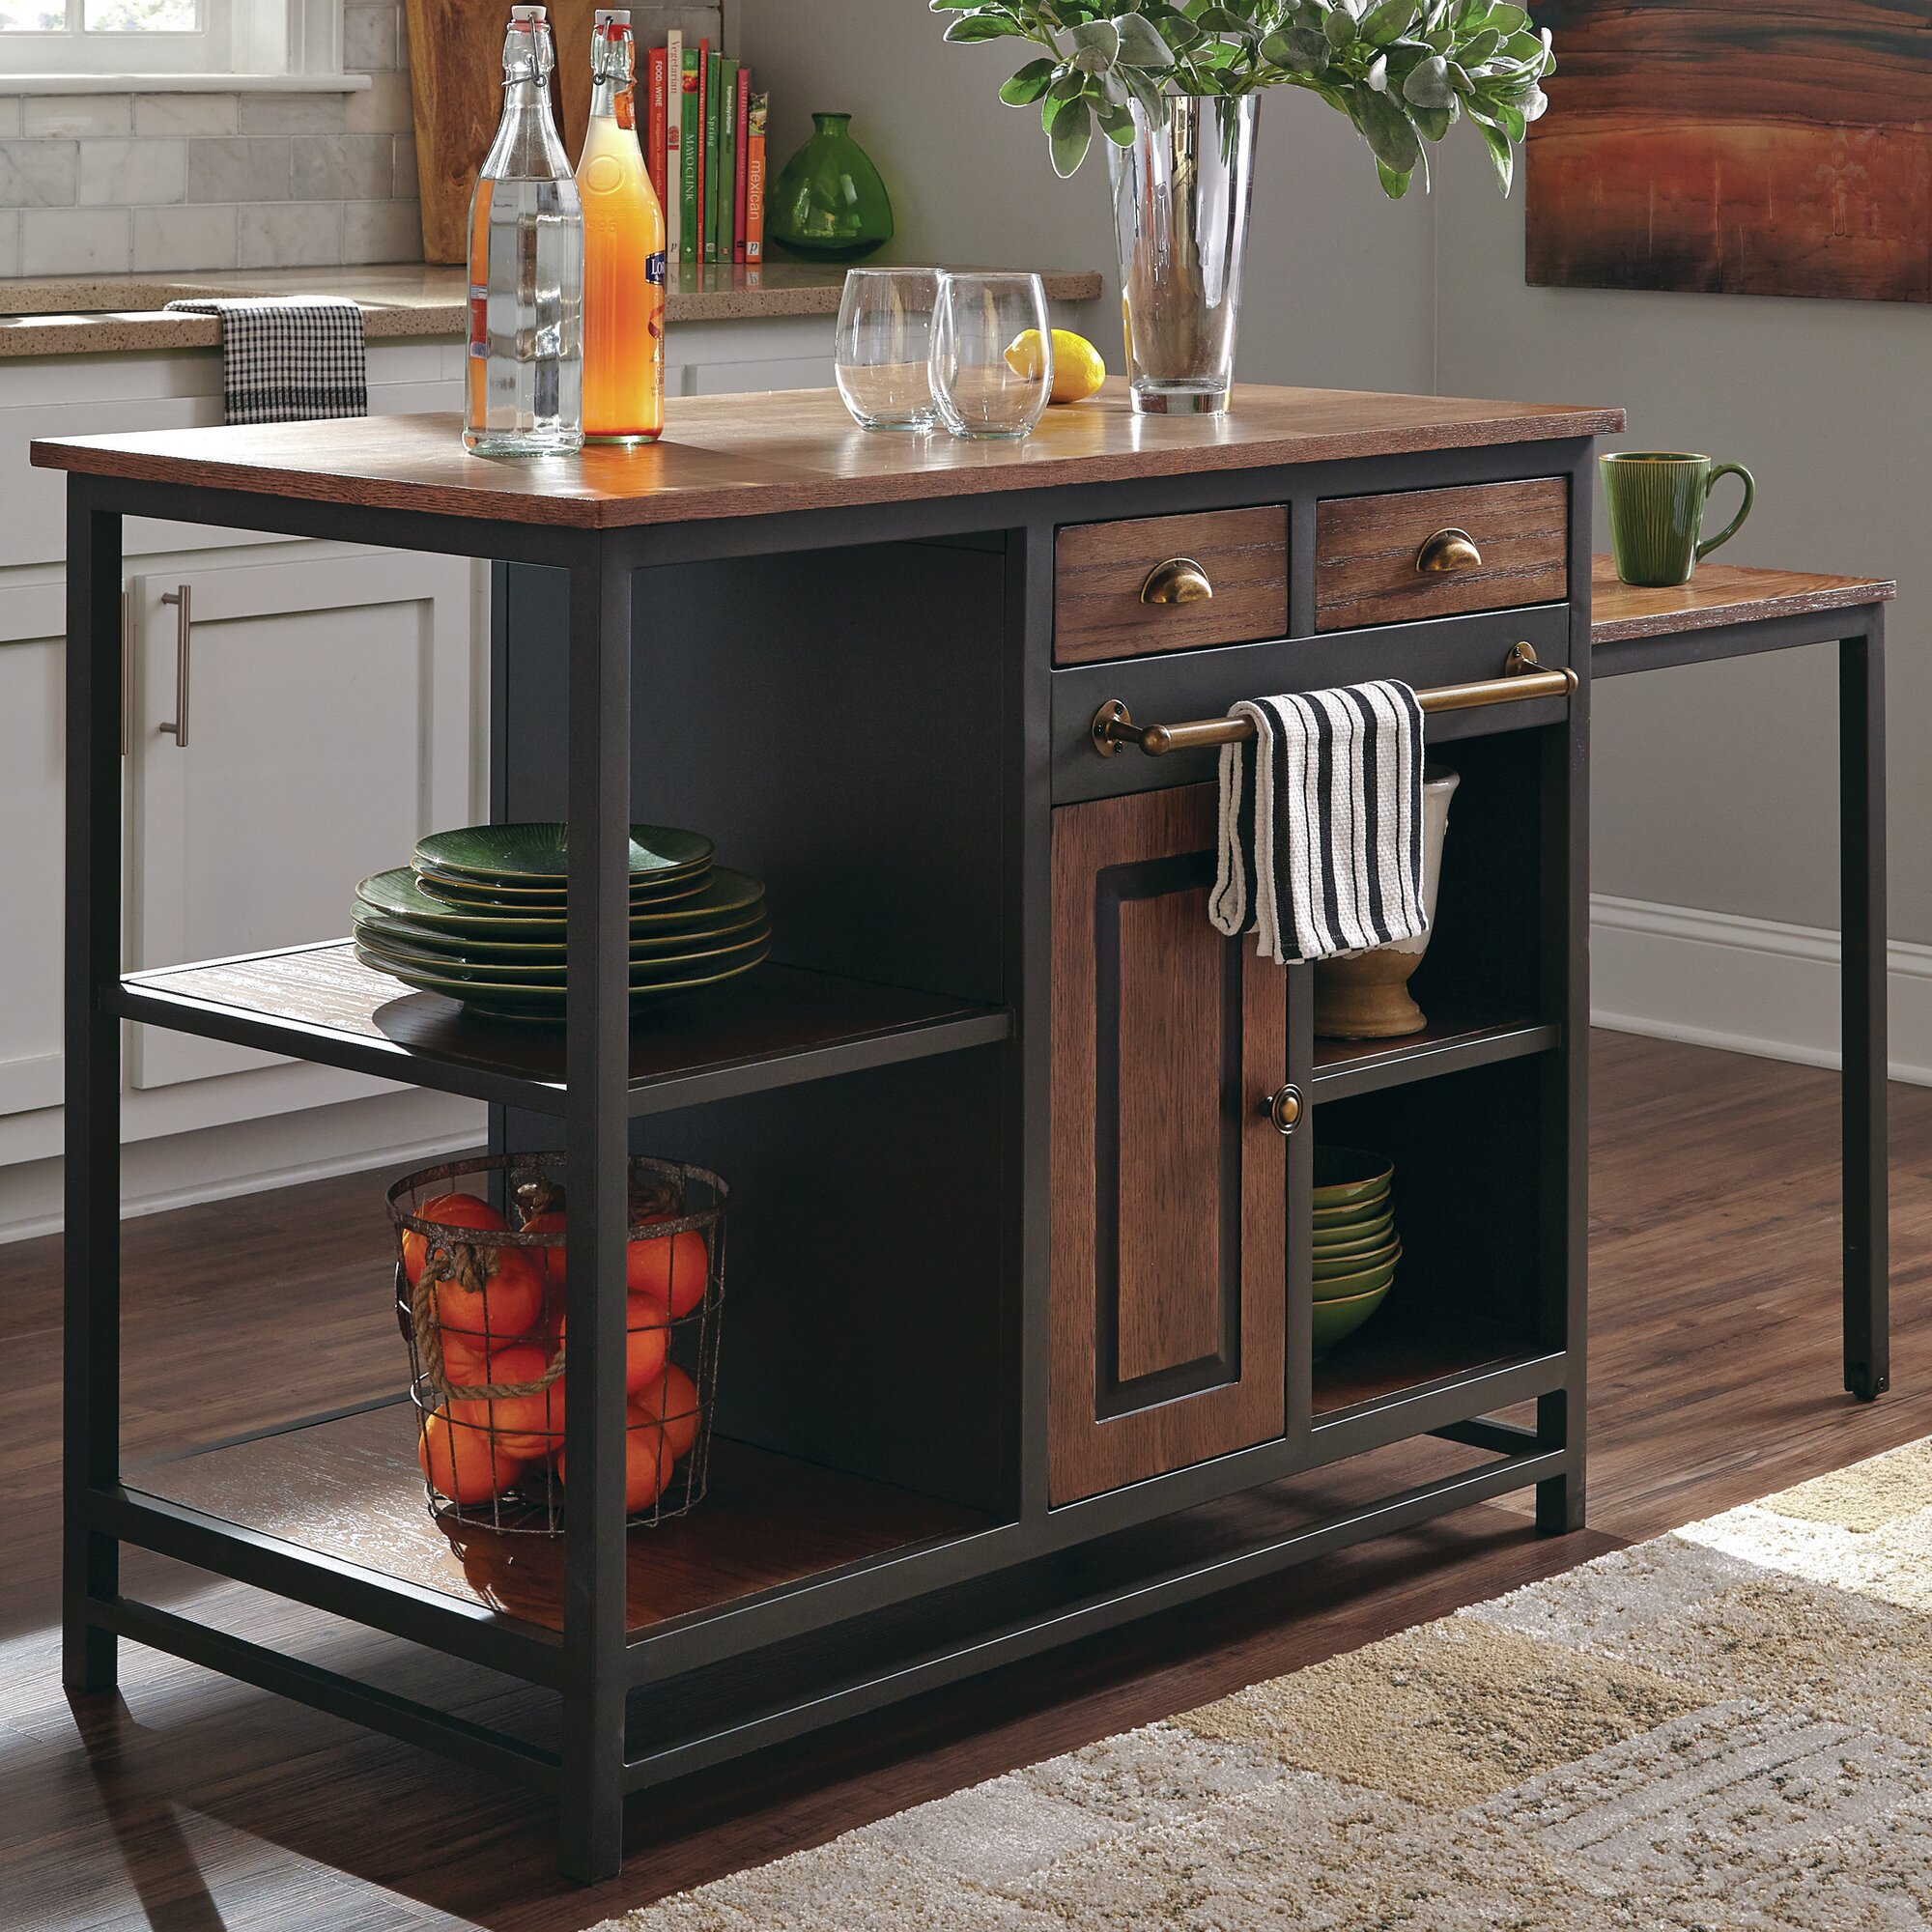 kitchen island with wood top donny osmond kitchen island with wood top amp reviews 8282